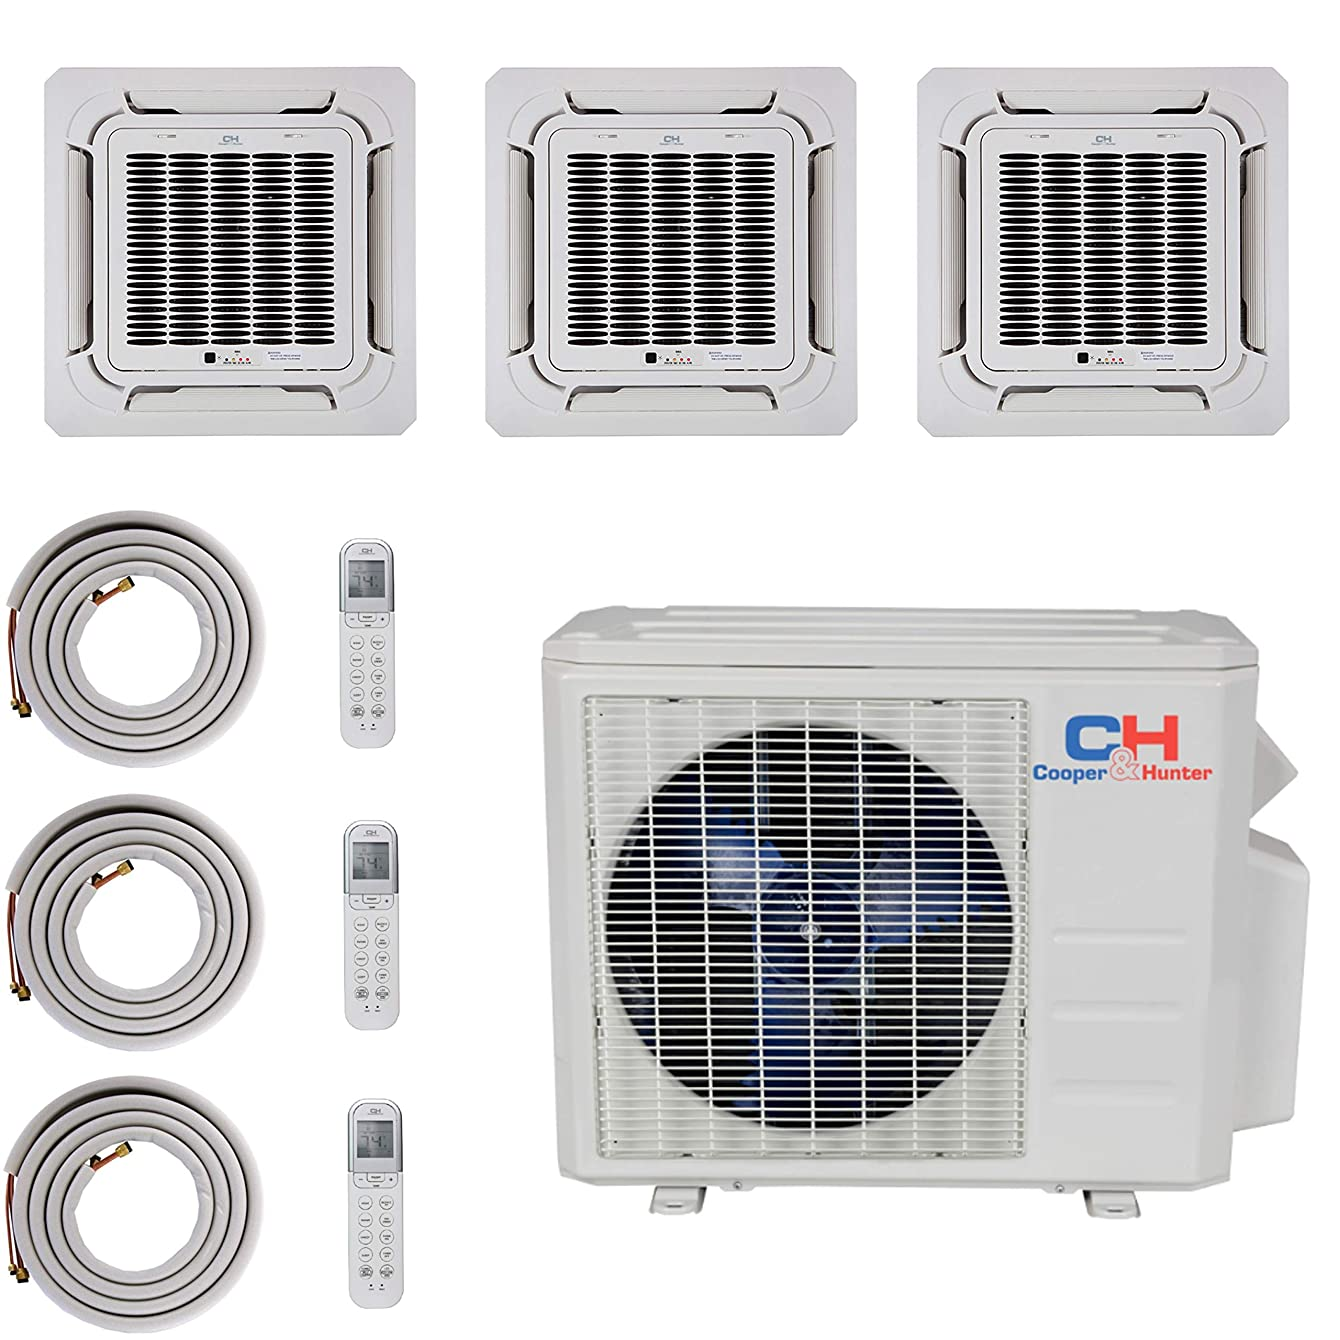 COOPER AND HUNTER Tri 3 Zone Ductless Mini Split Ceiling Cassette Air Conditioner Heat Pump 12000 12000 12000